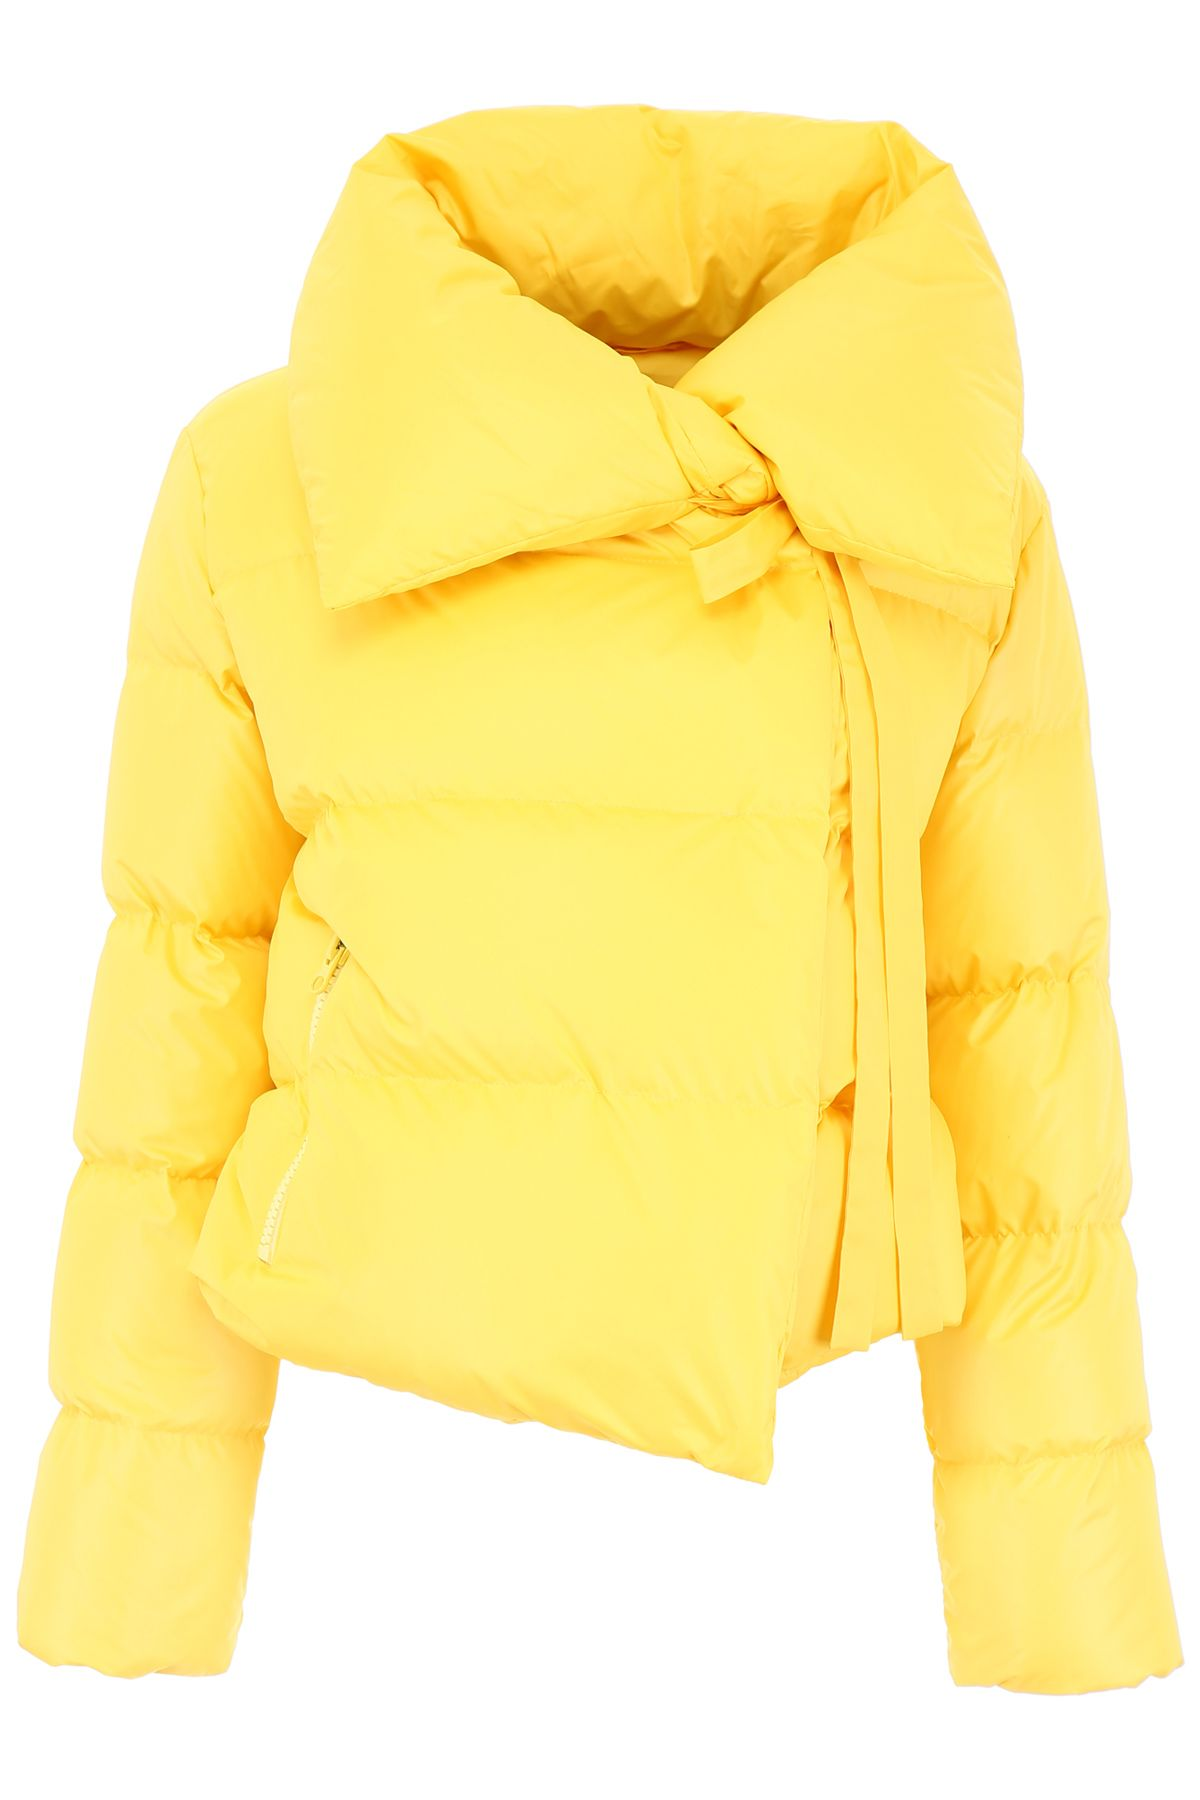 BACON CLOTHING Puffer Jacket With Bow in Yellow